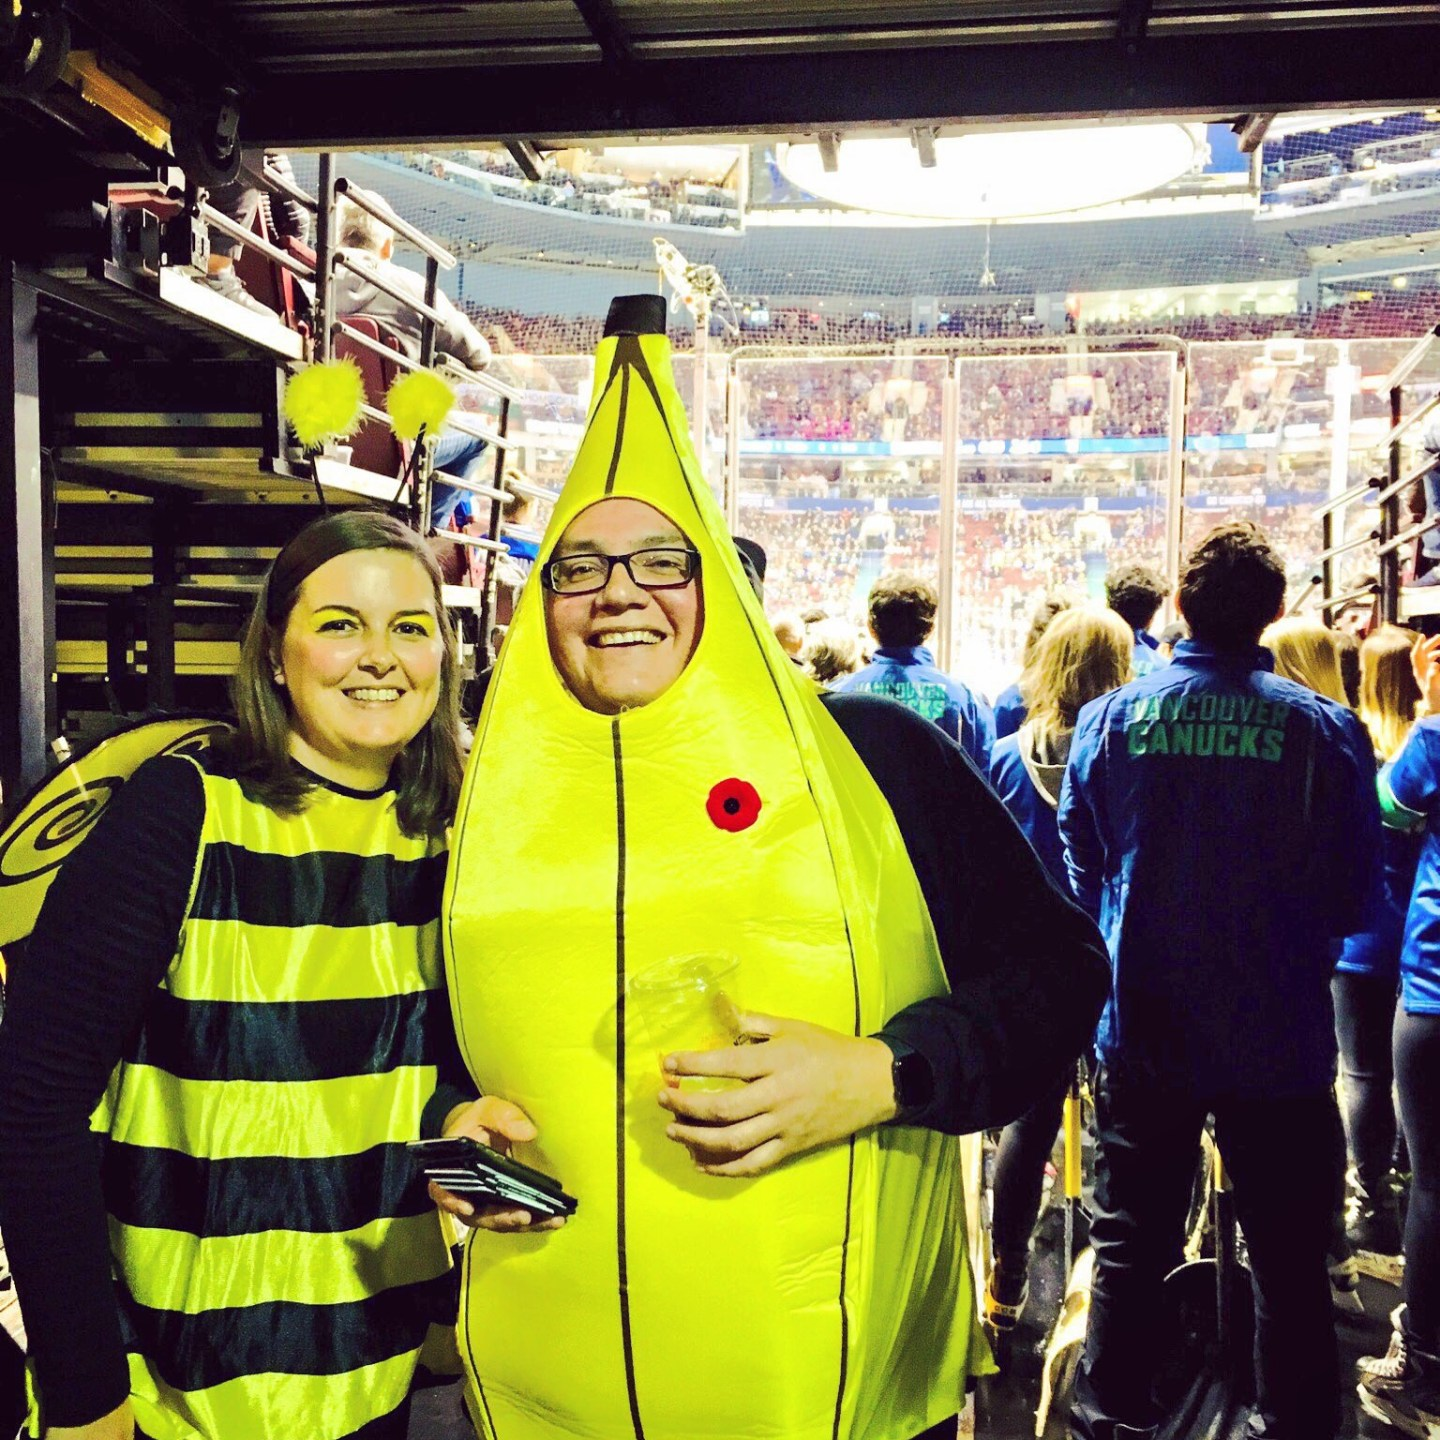 The banana and the bumble bee